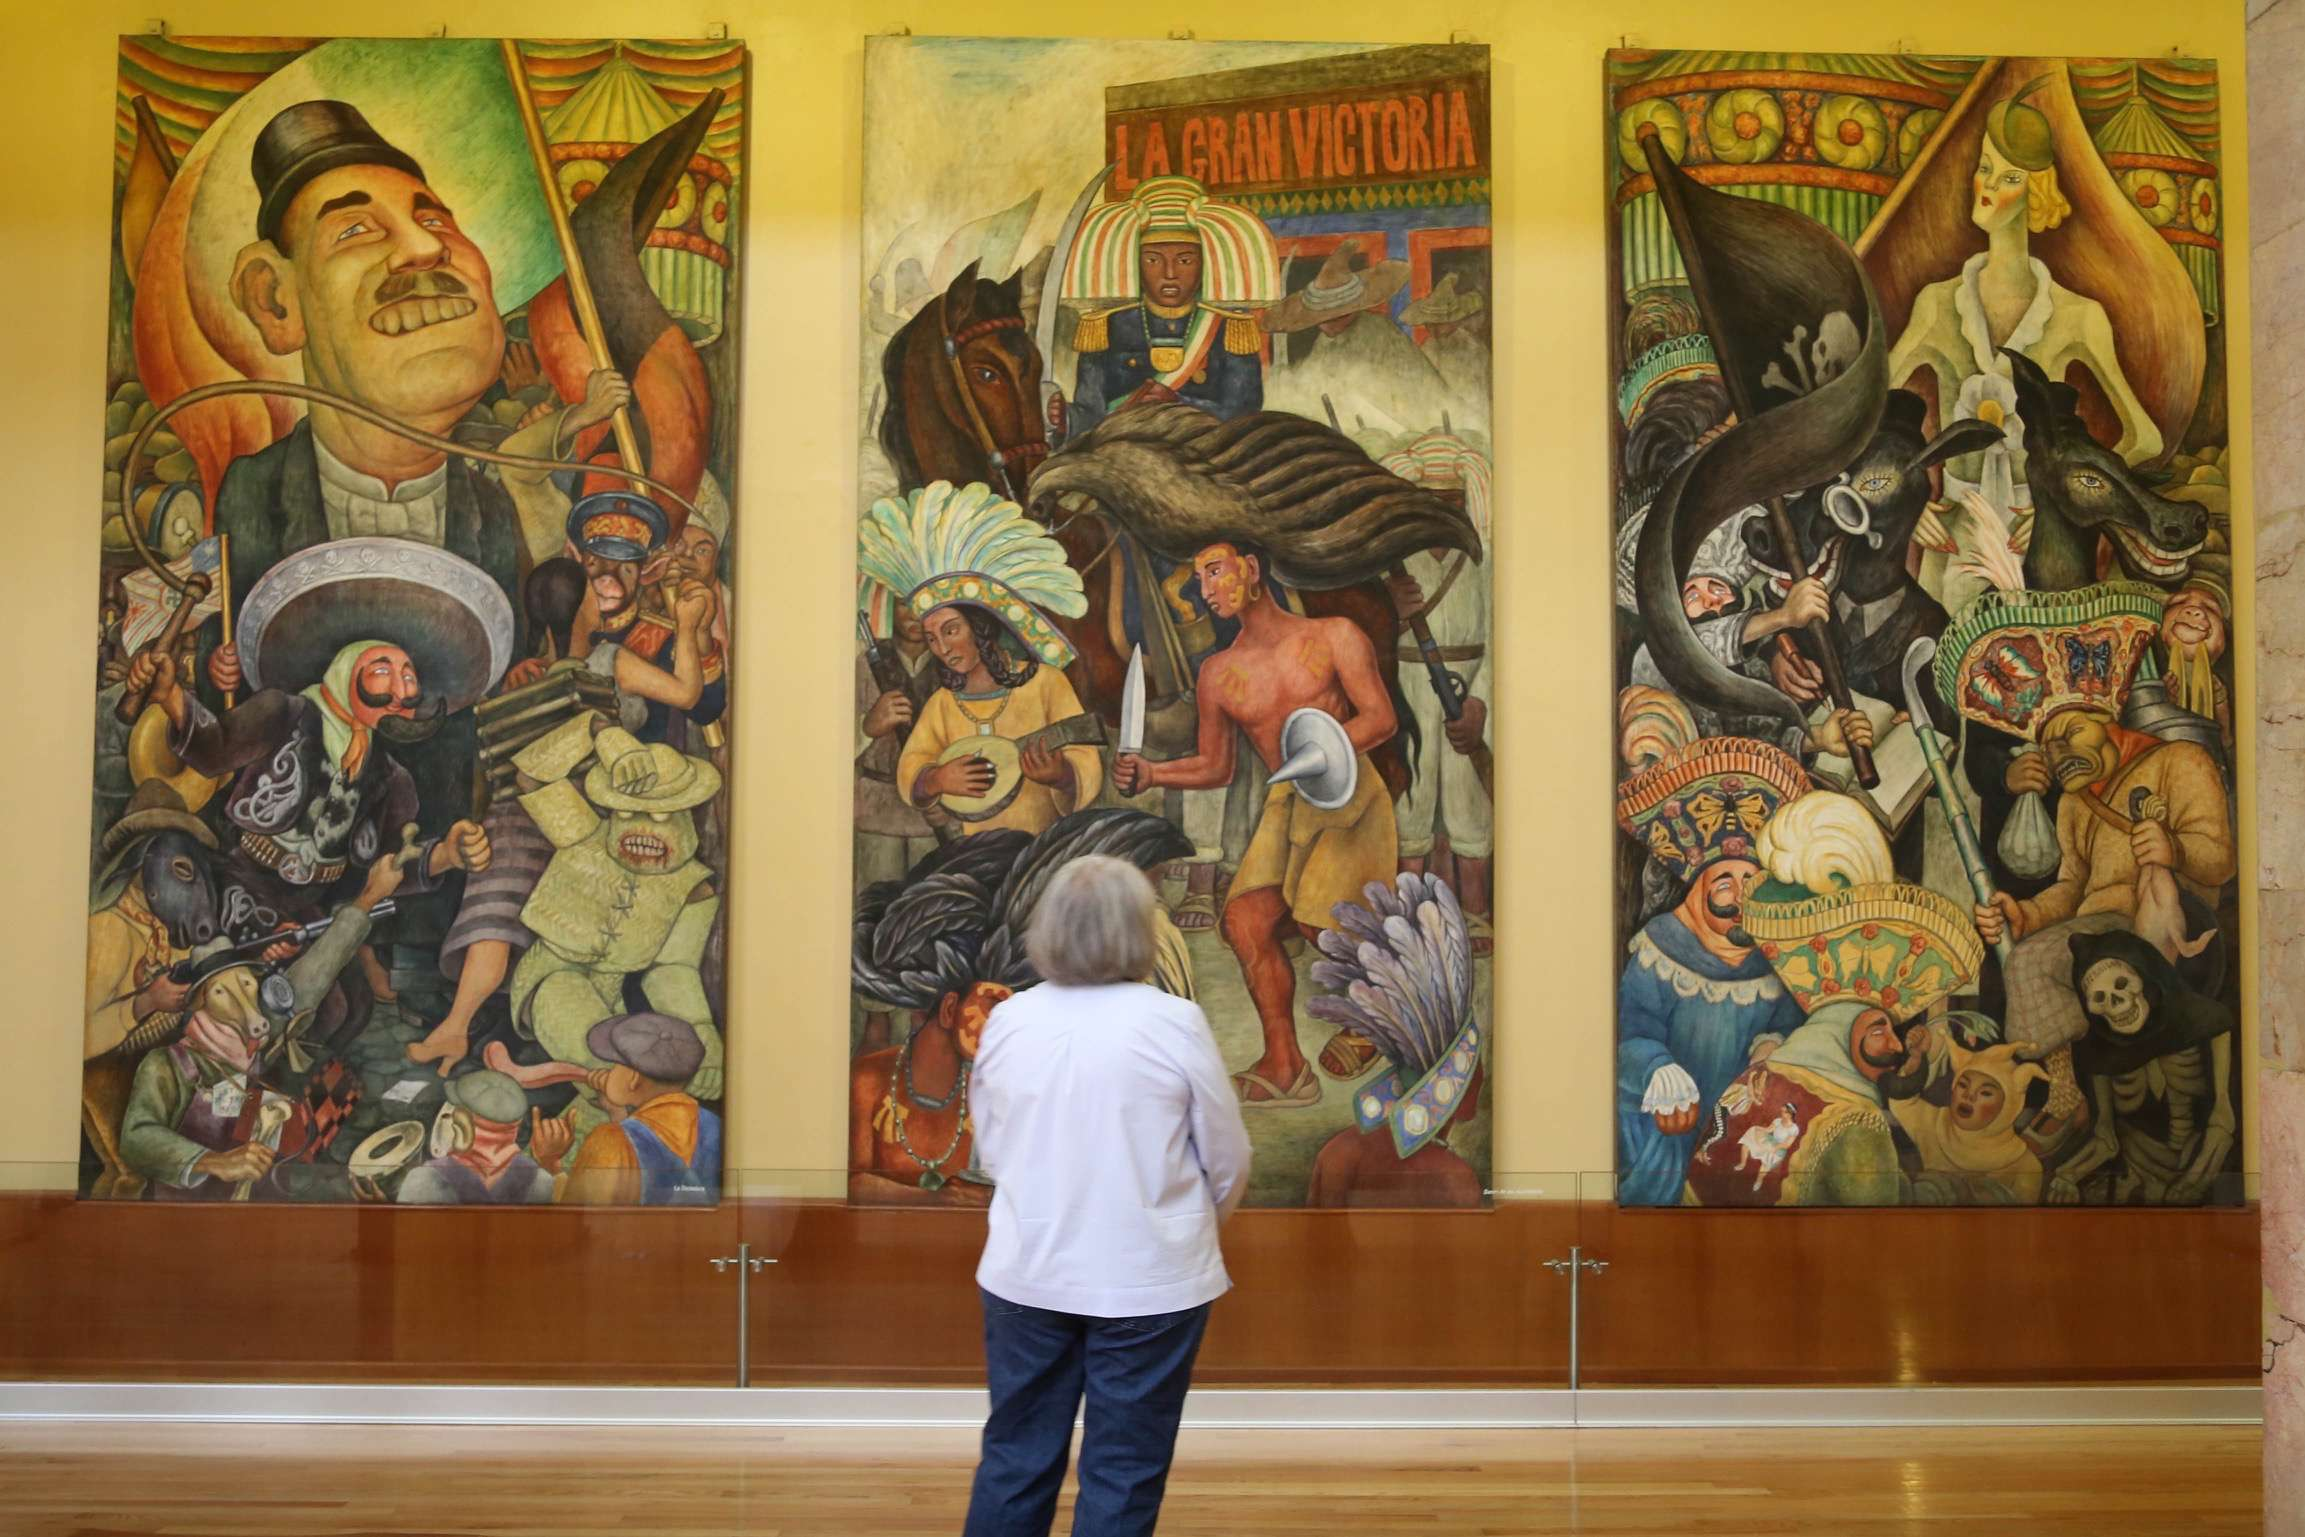 Mexico is famed for murals and Bellas Artes is an excellent spot to see works by artists such as Rivera and Siquerios.